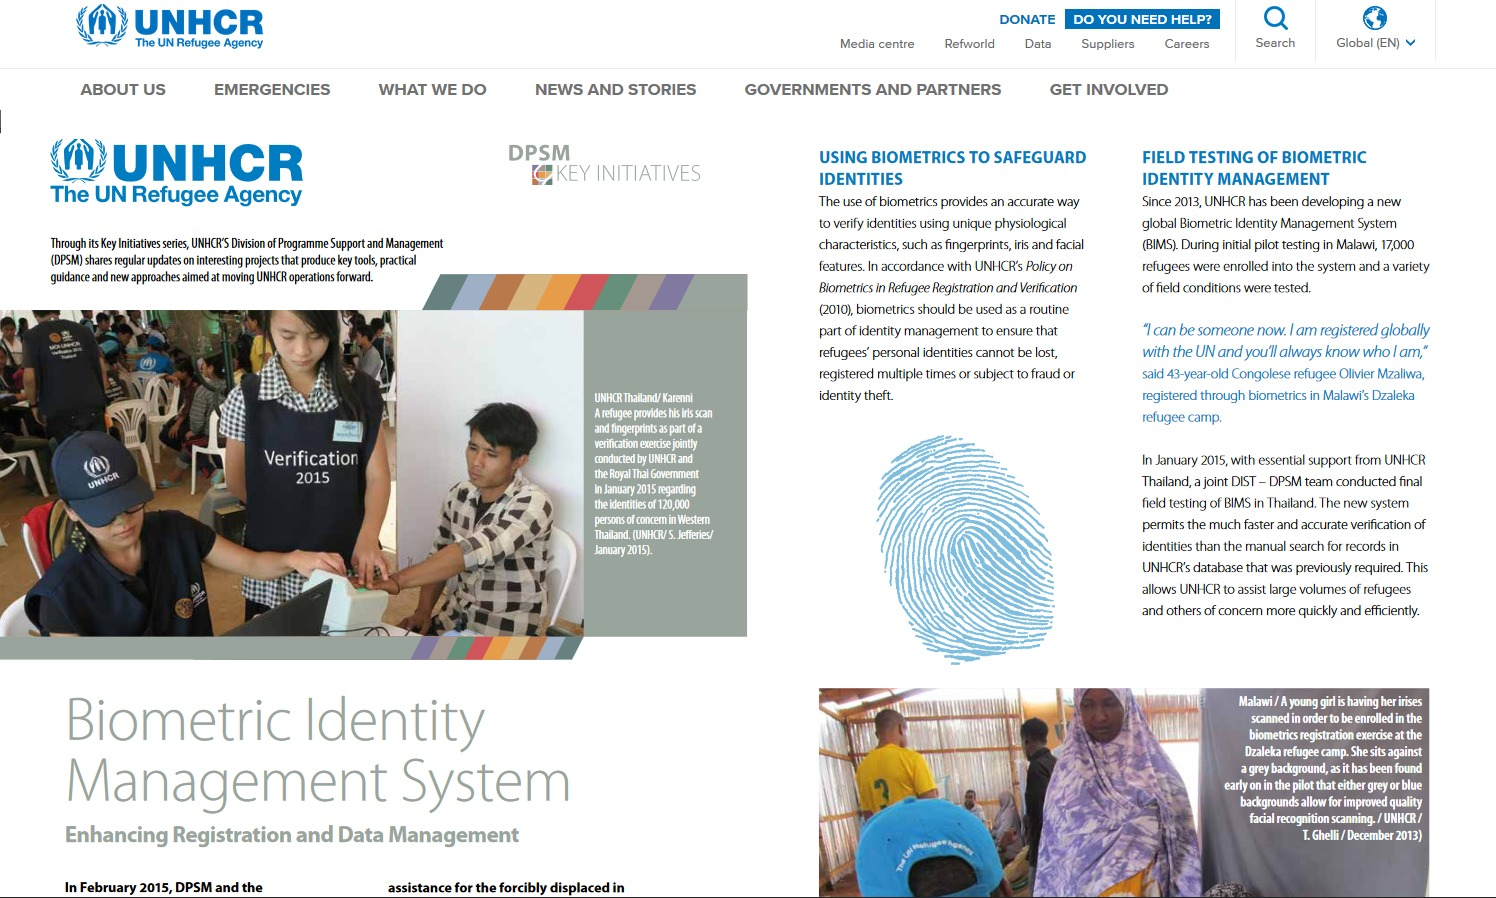 UNHCR - Biometric Identity Management System